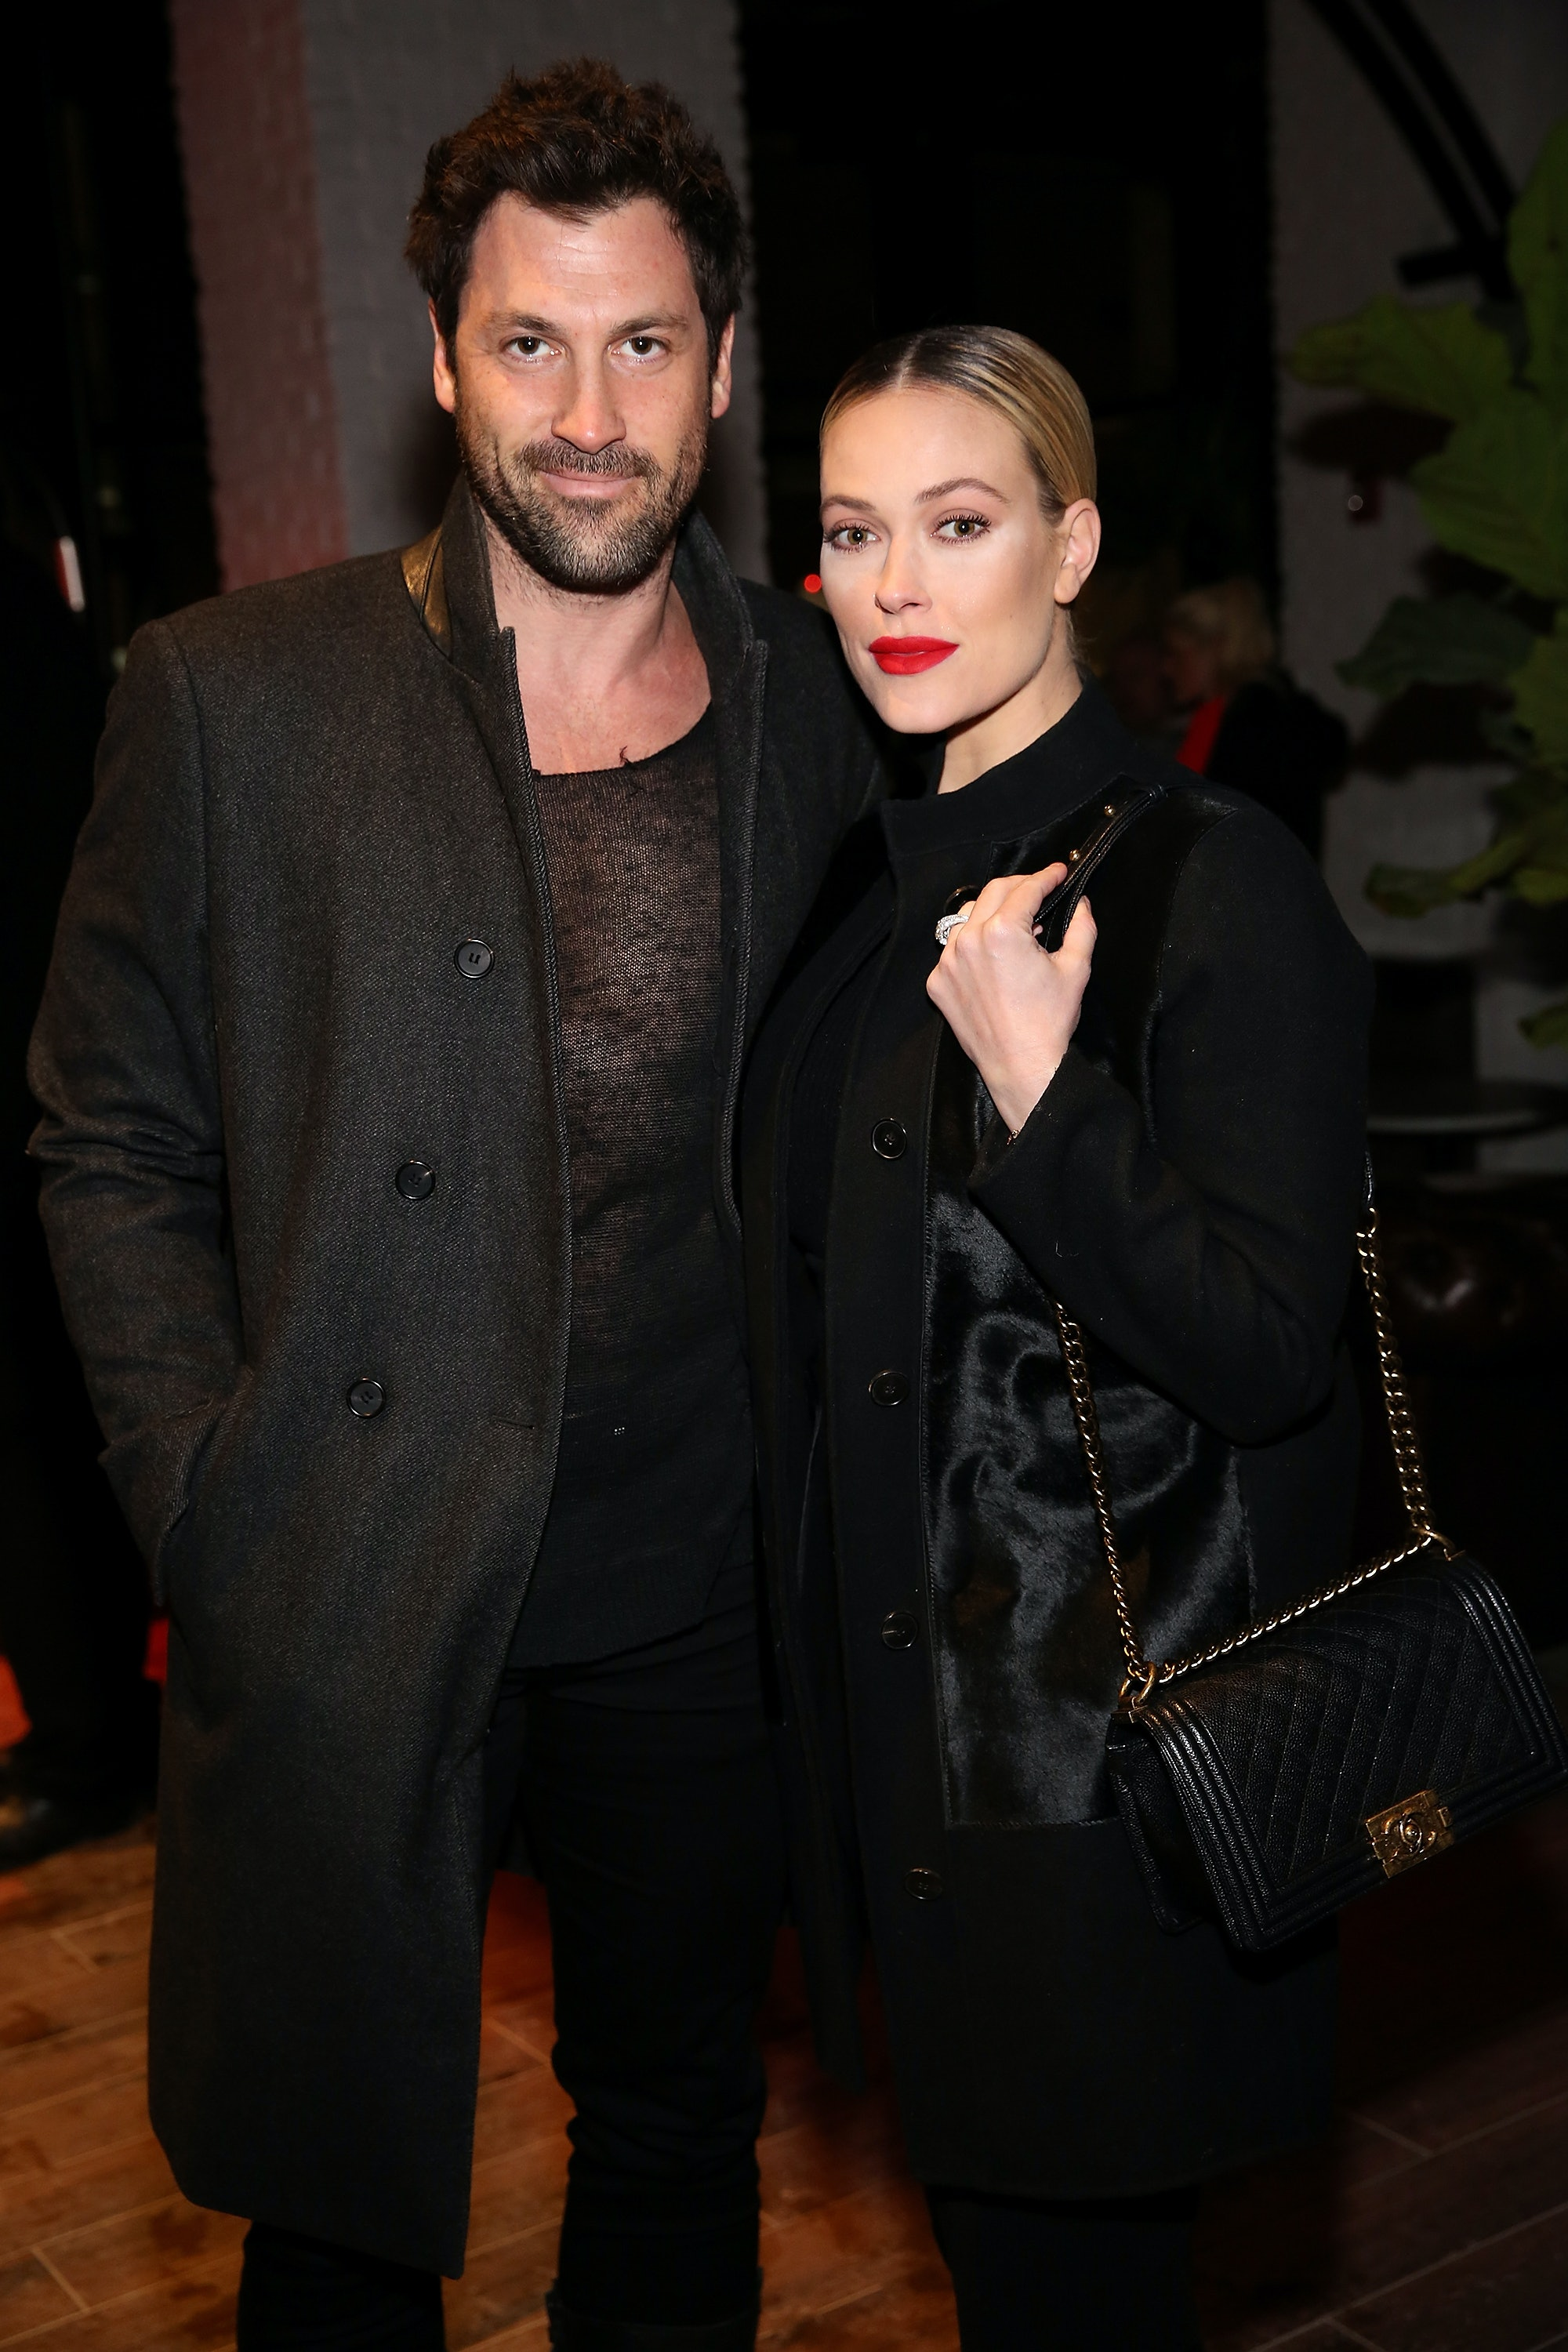 Is max from dancing with the stars still dating peta